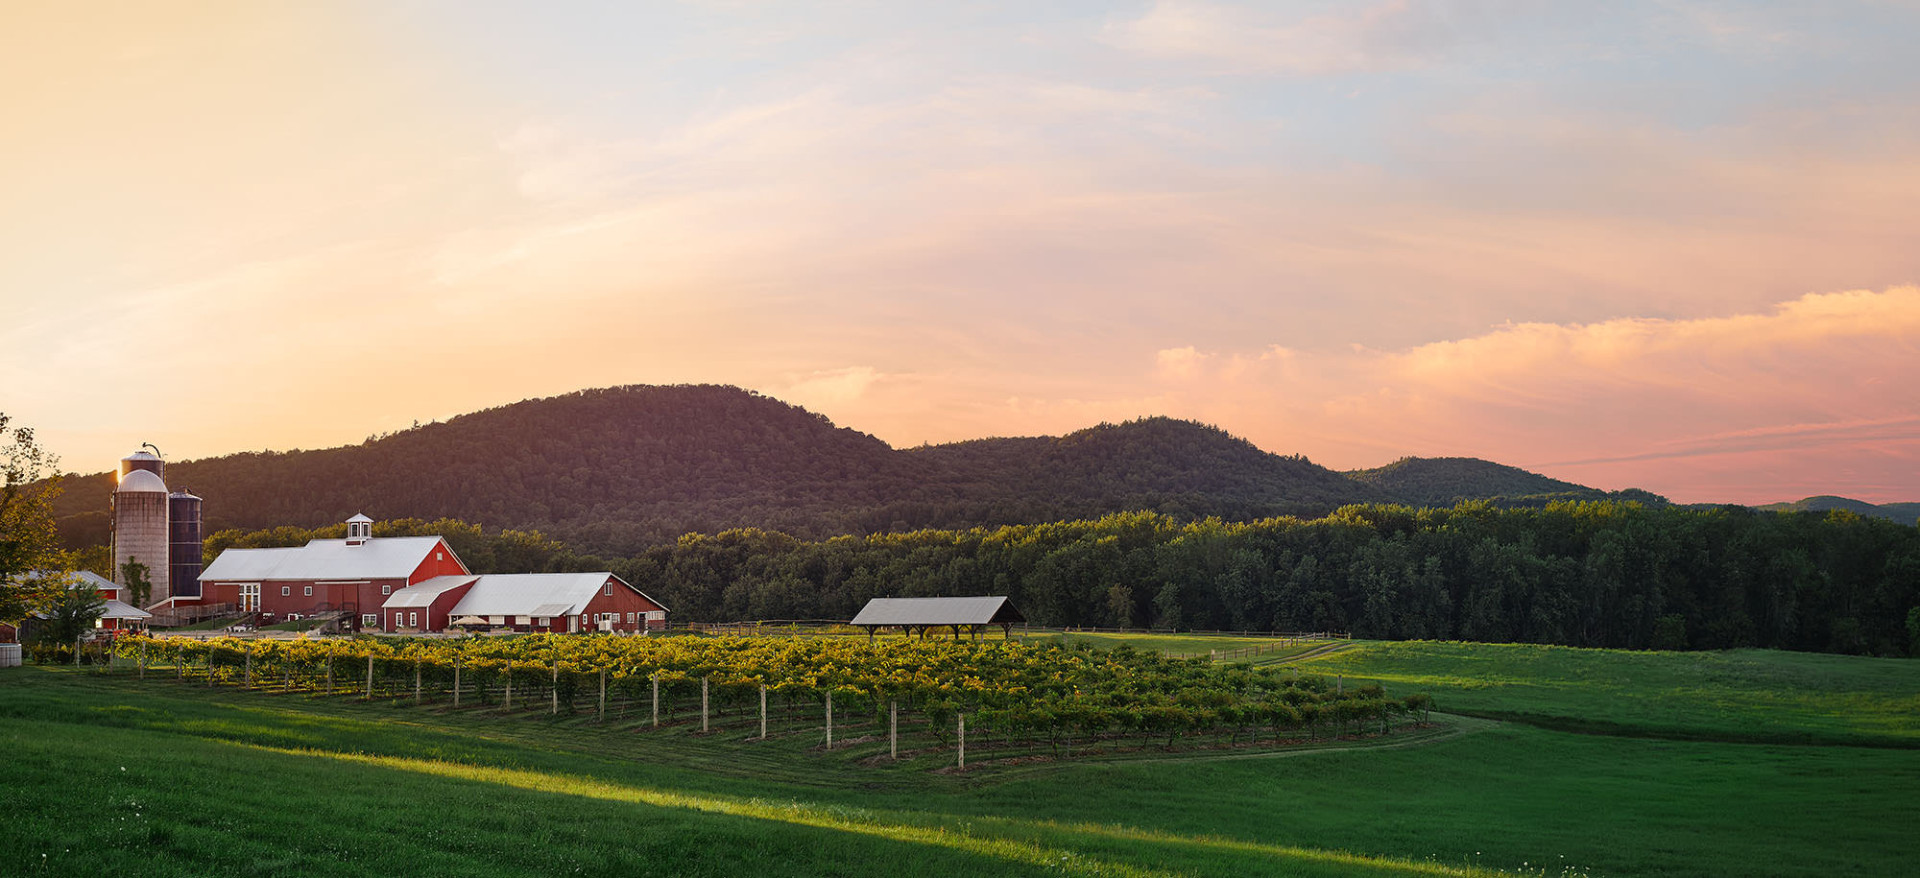 Ottawa Editorial photographer Matthew Liteplo crafted this image of Boyden Valley Winery while touring around Vermont.  It